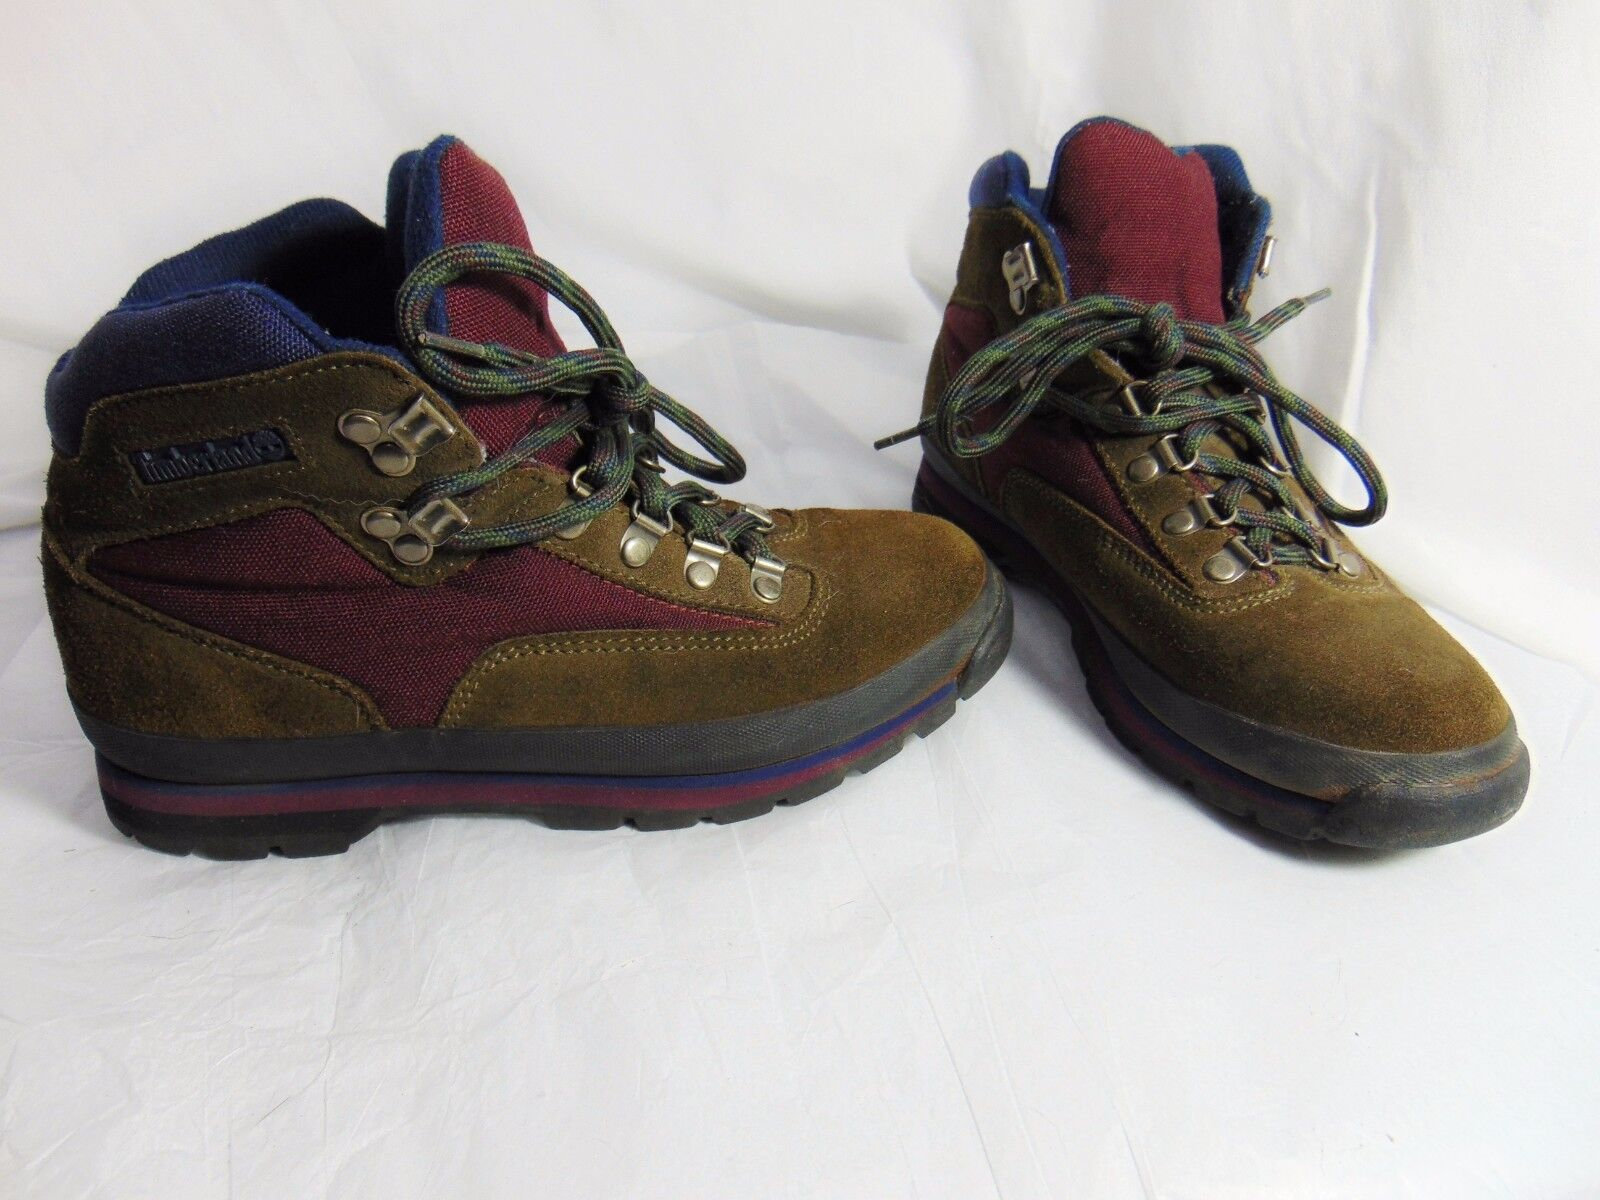 TIMBERLAND Vintage 80s 90s Women's Alpine Style Boots 8.5 M Brown Burgundy Blue